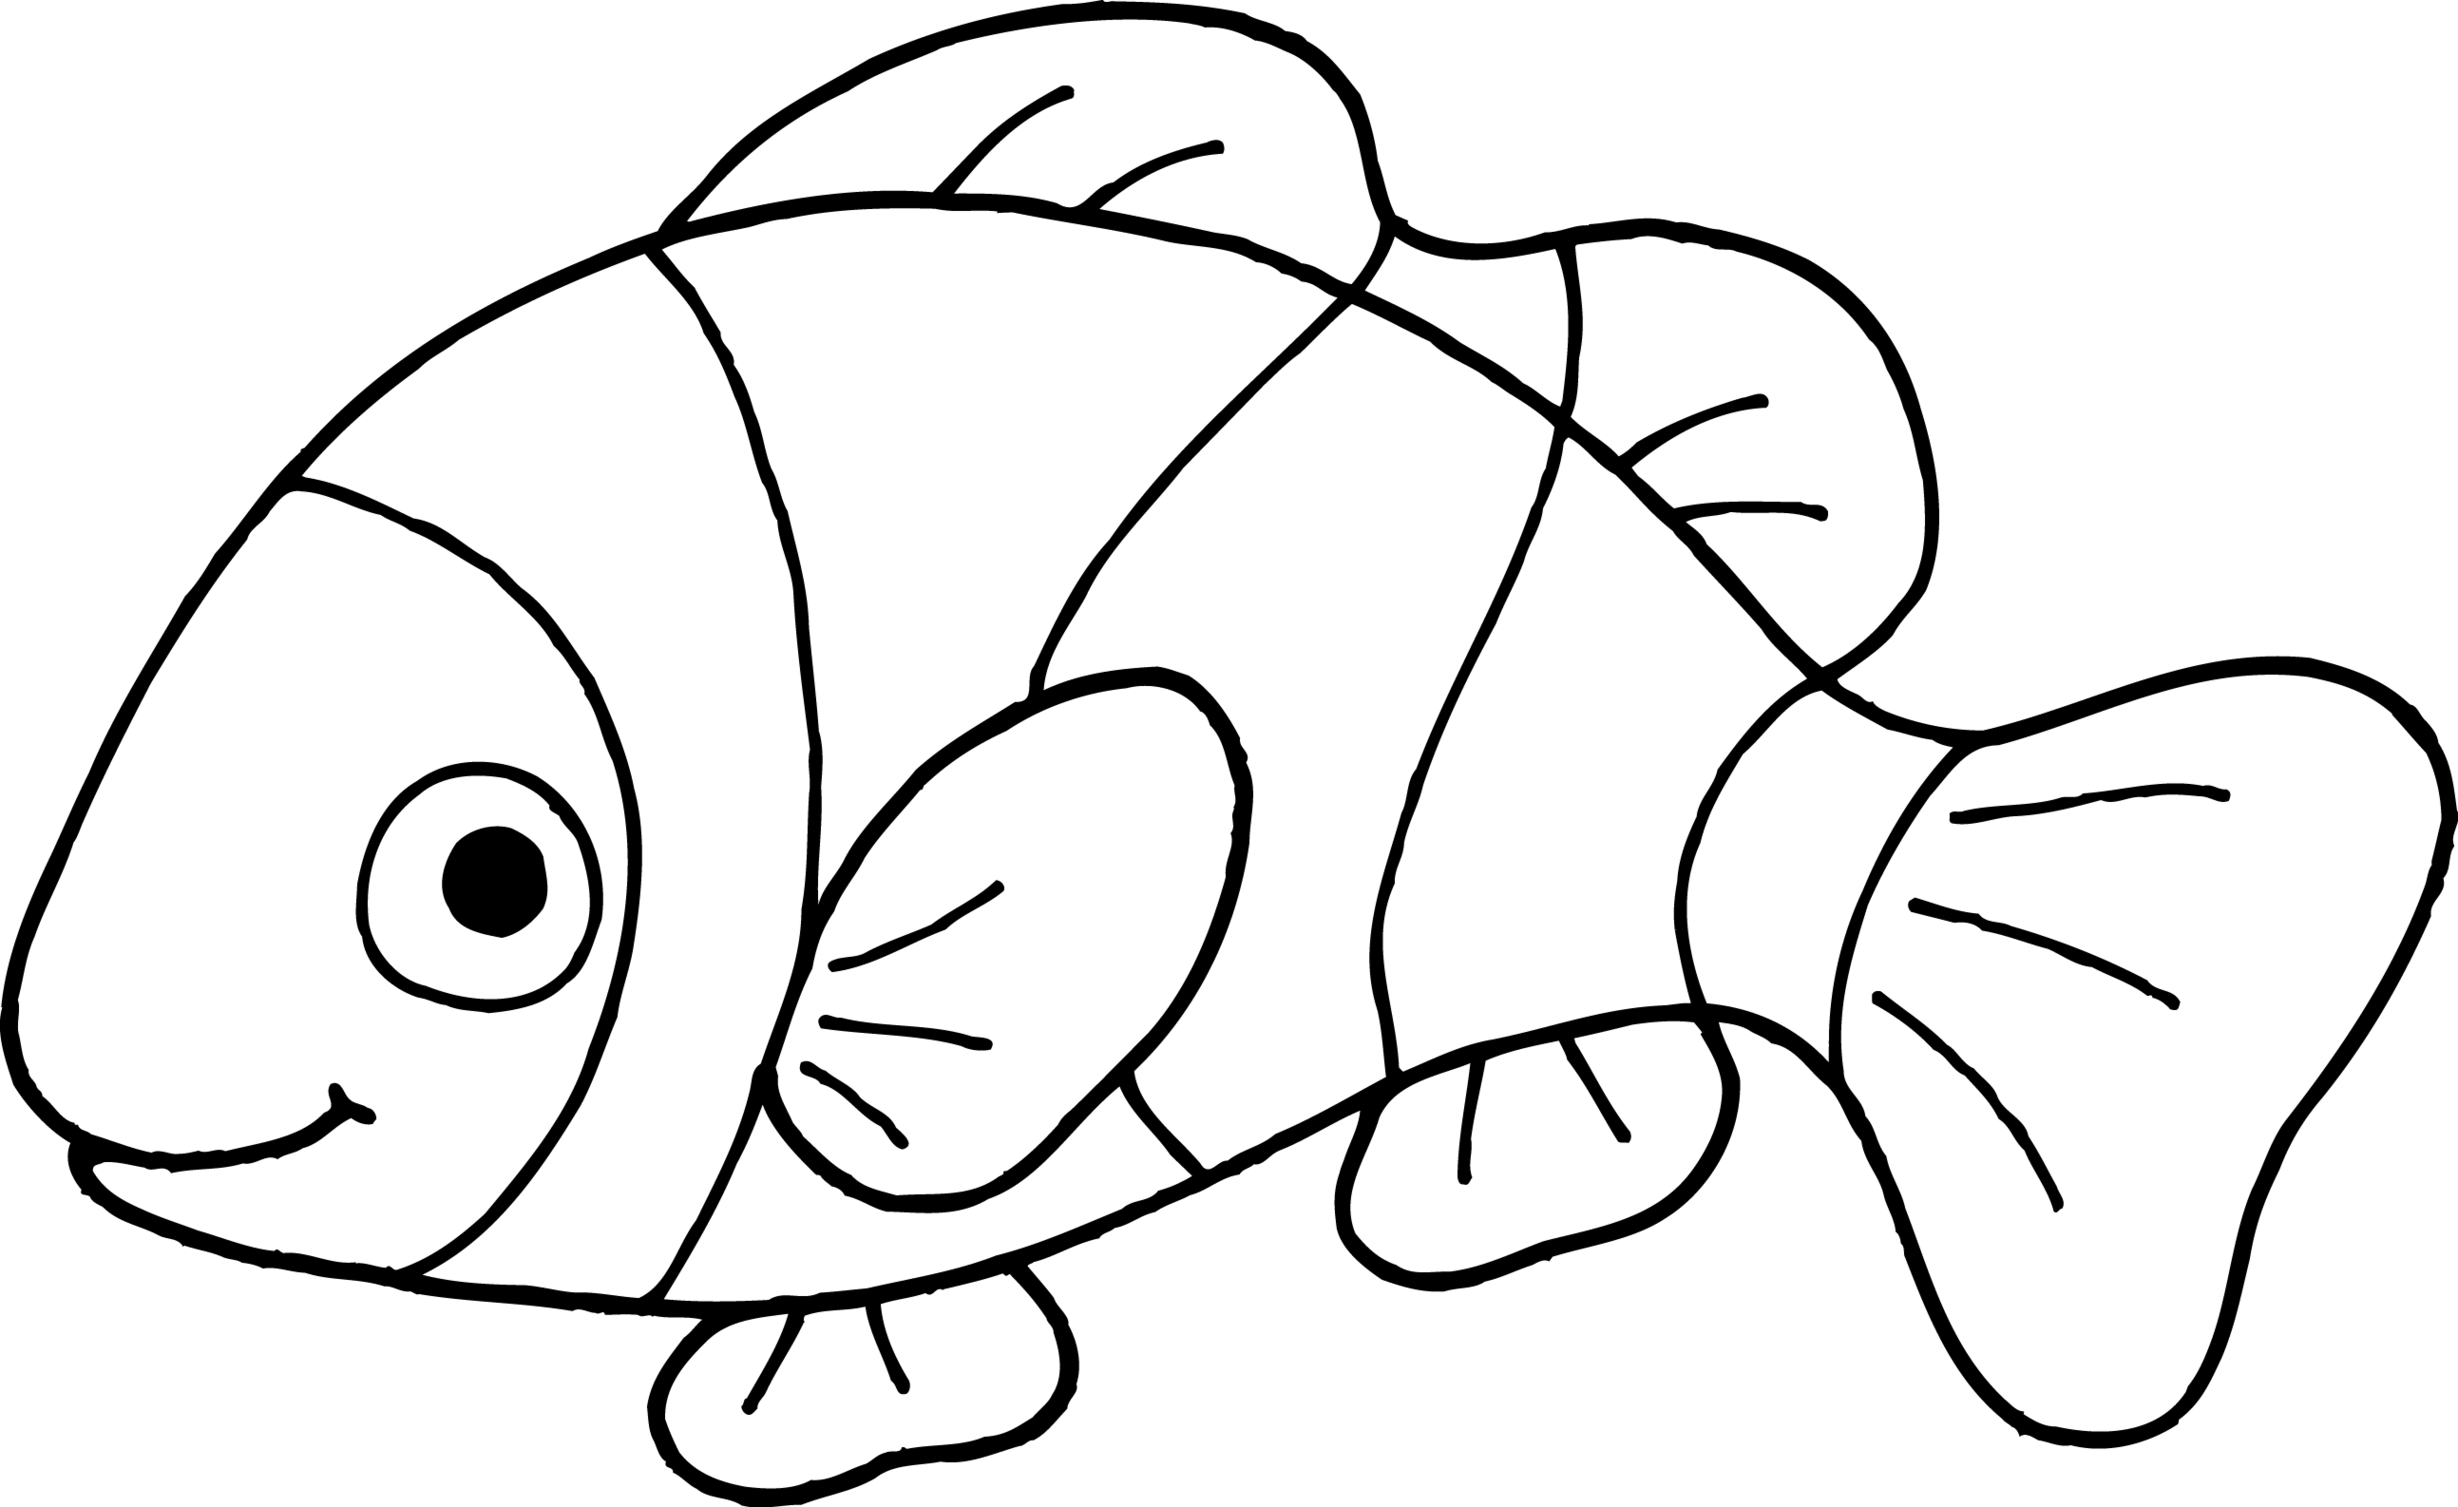 Fish outline tropical. Line cliparts free download